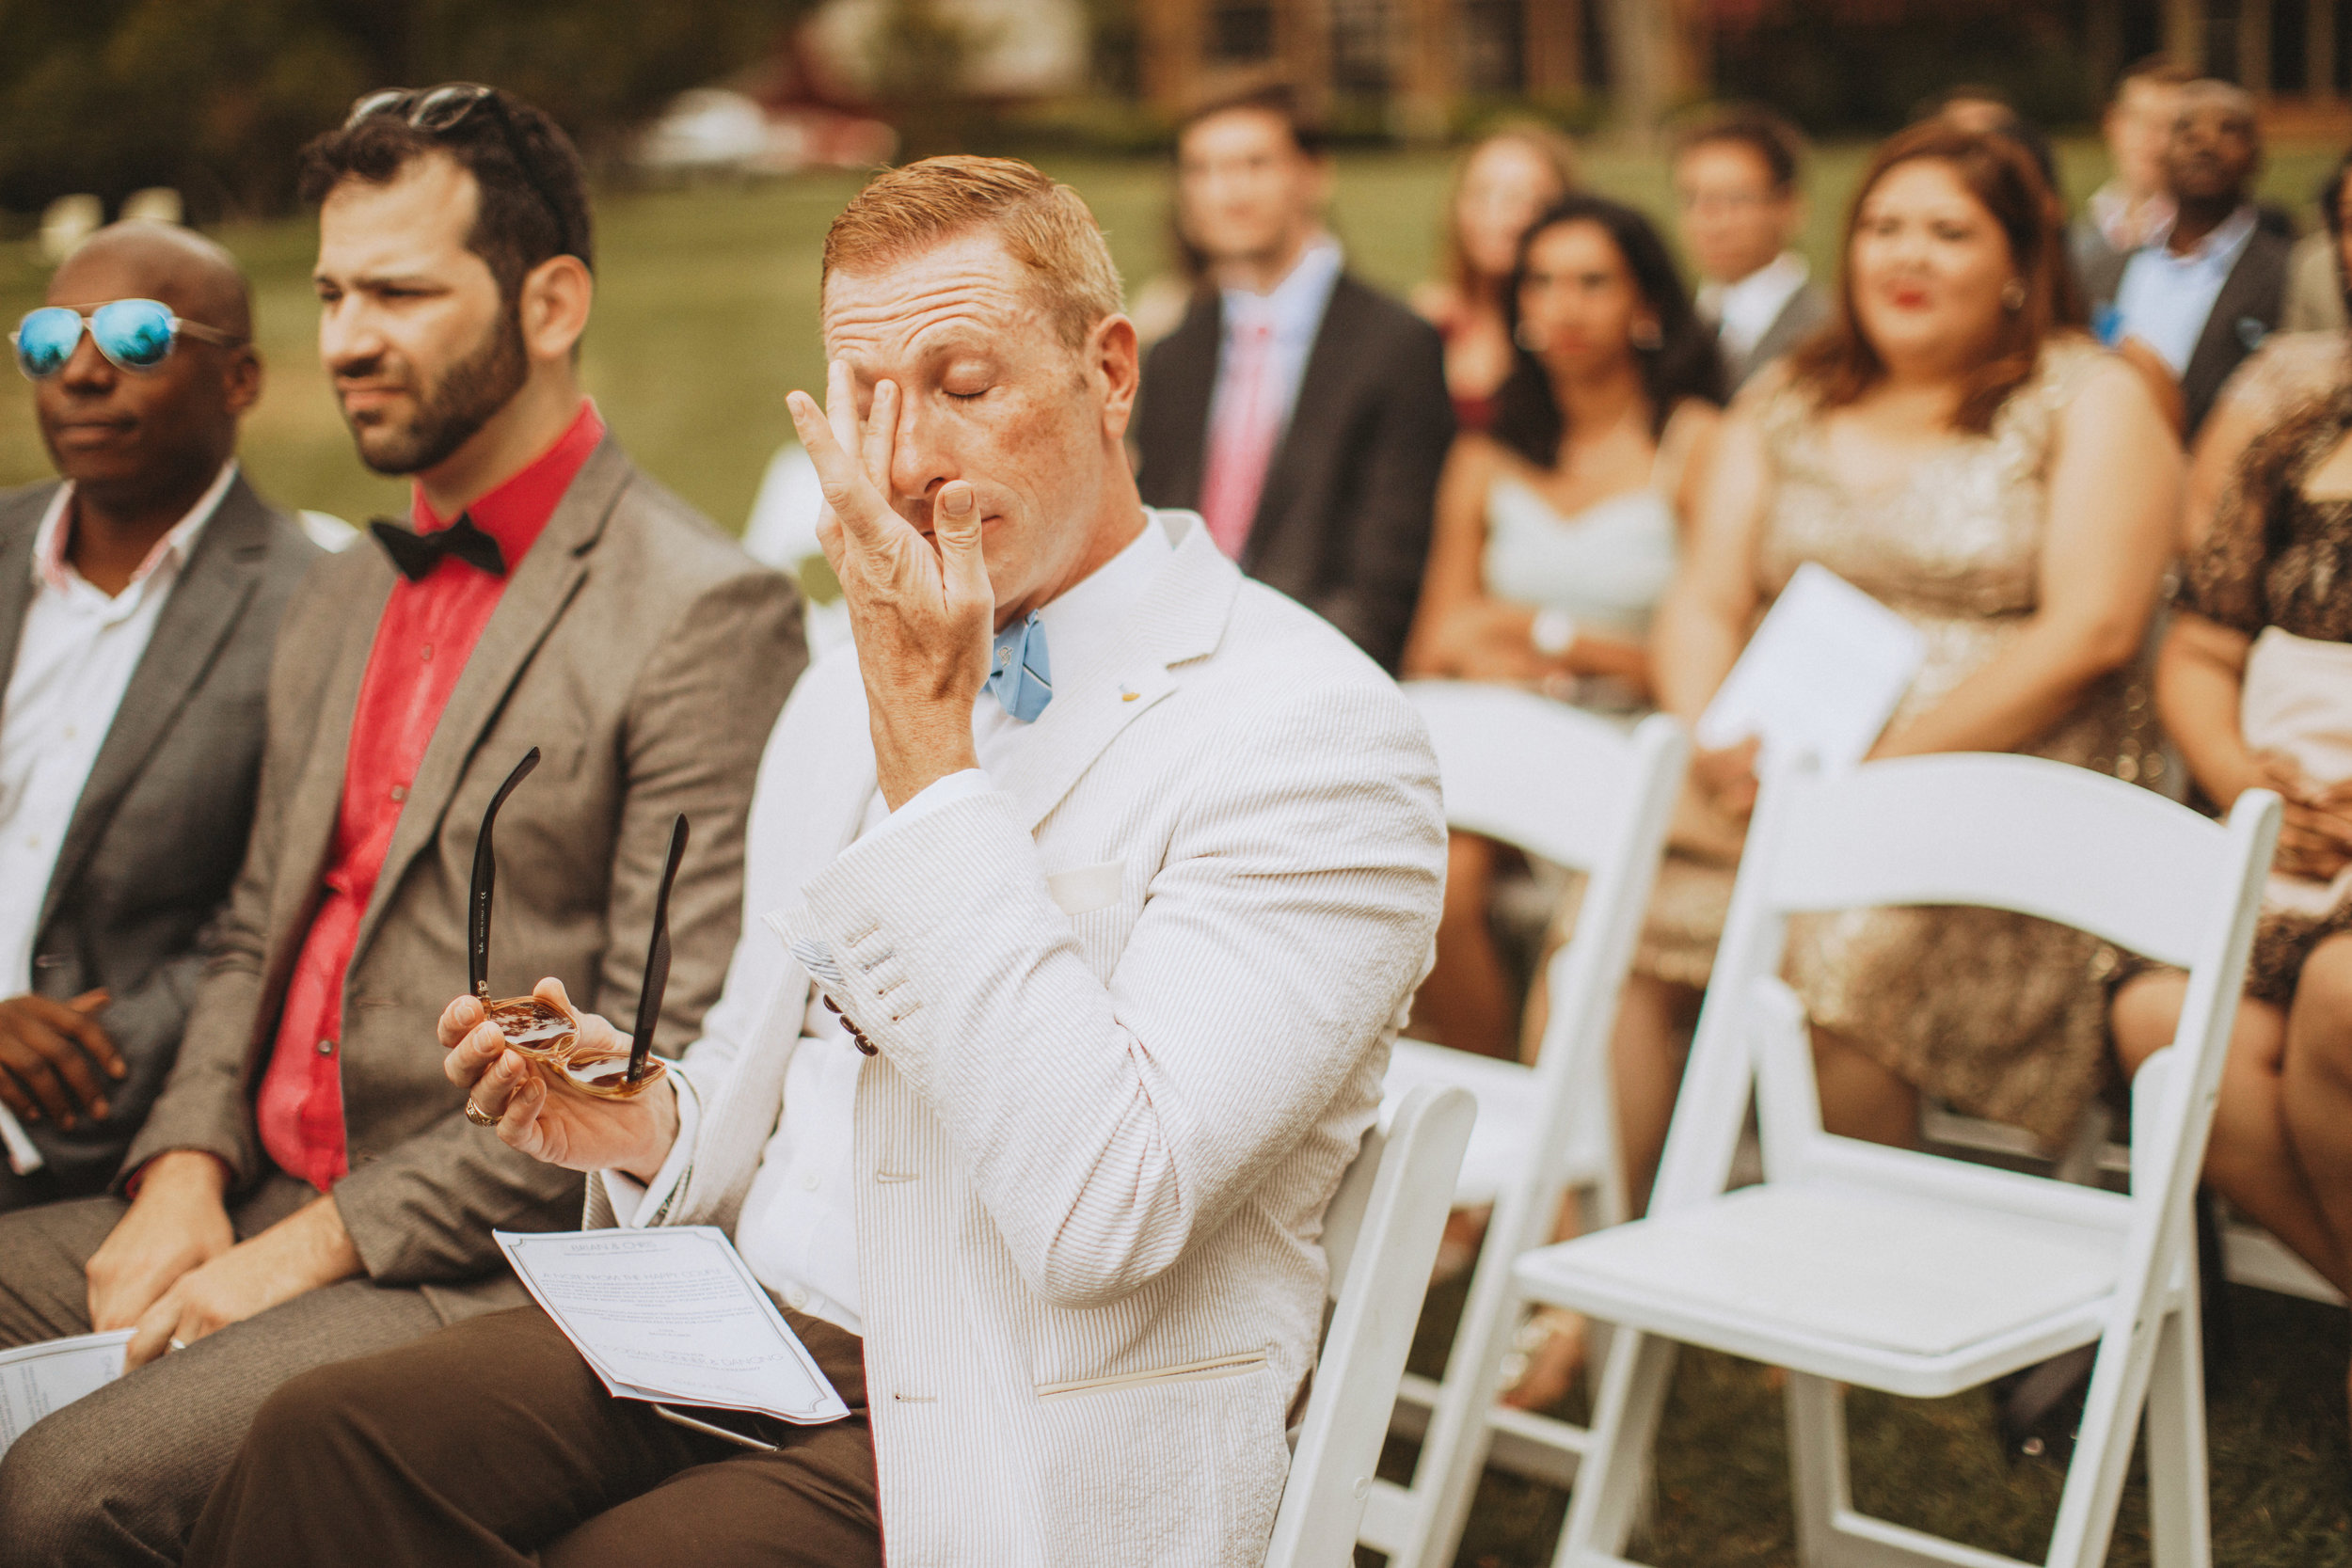 emotional wedding guest during ceremony